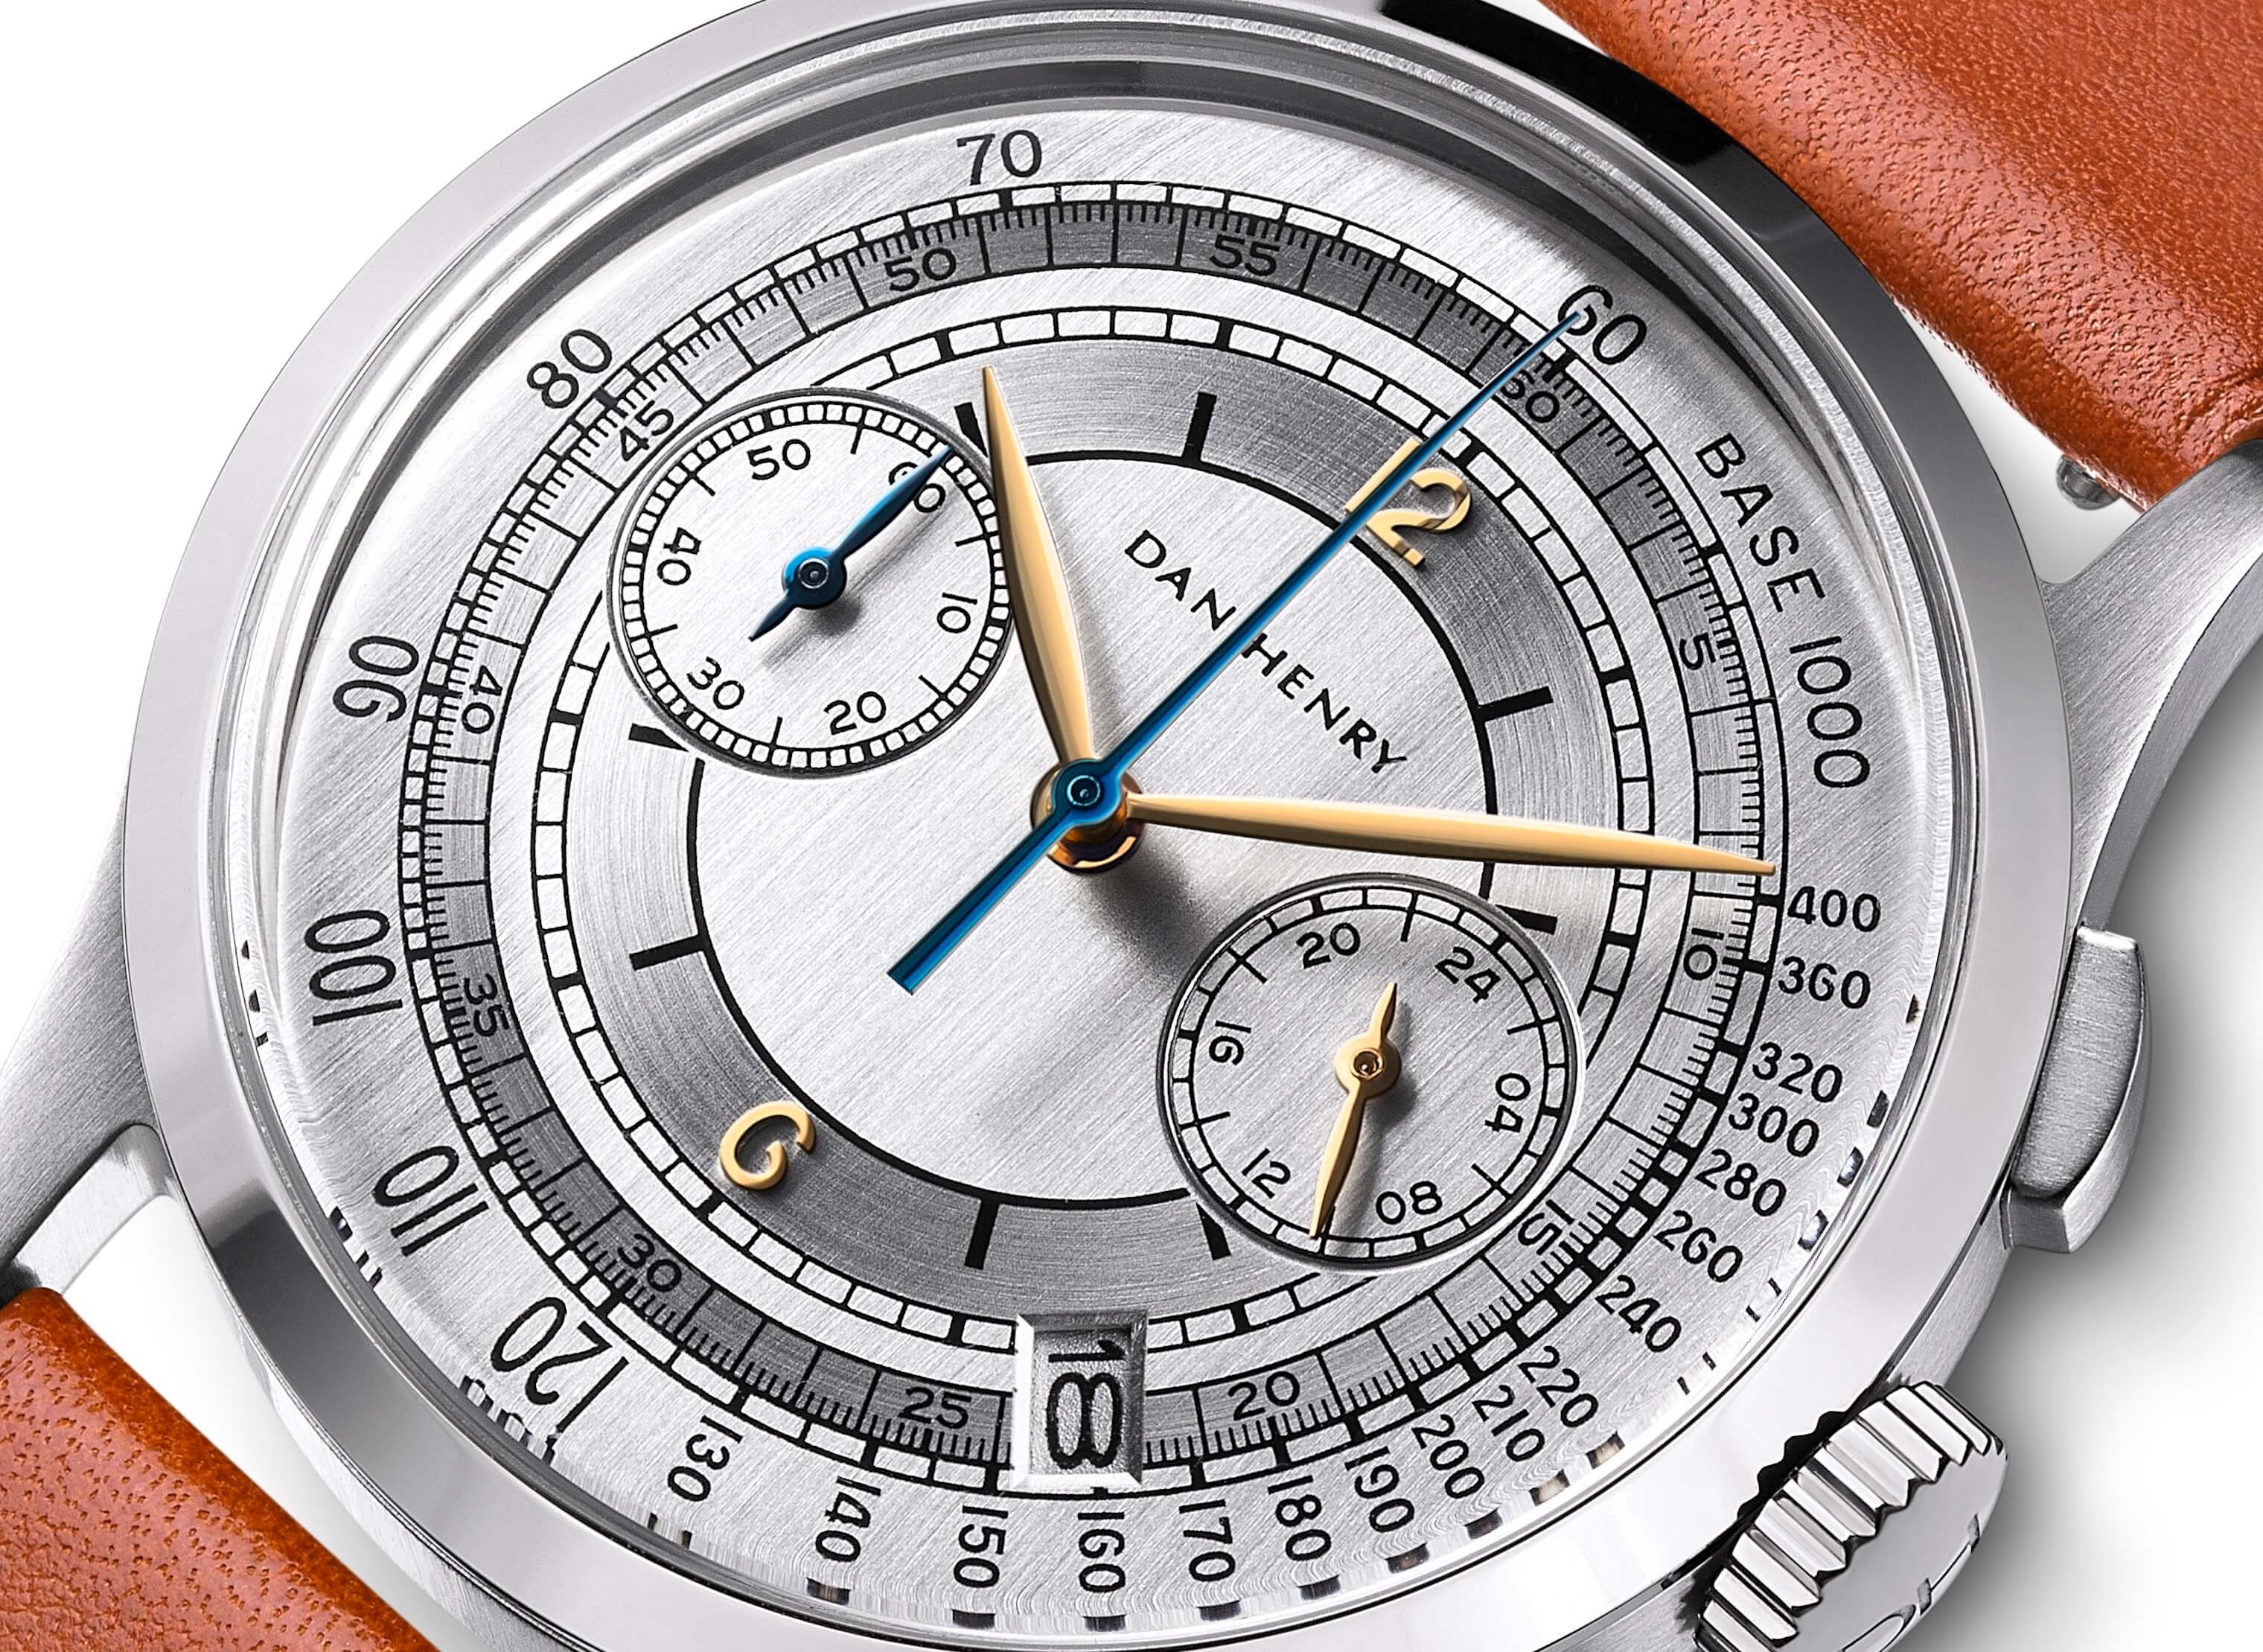 <h3>Dial</h3><p>Silver sector dial with Tachymeter, gold applied numbers, Leaf-shaped hands, and date window </p>